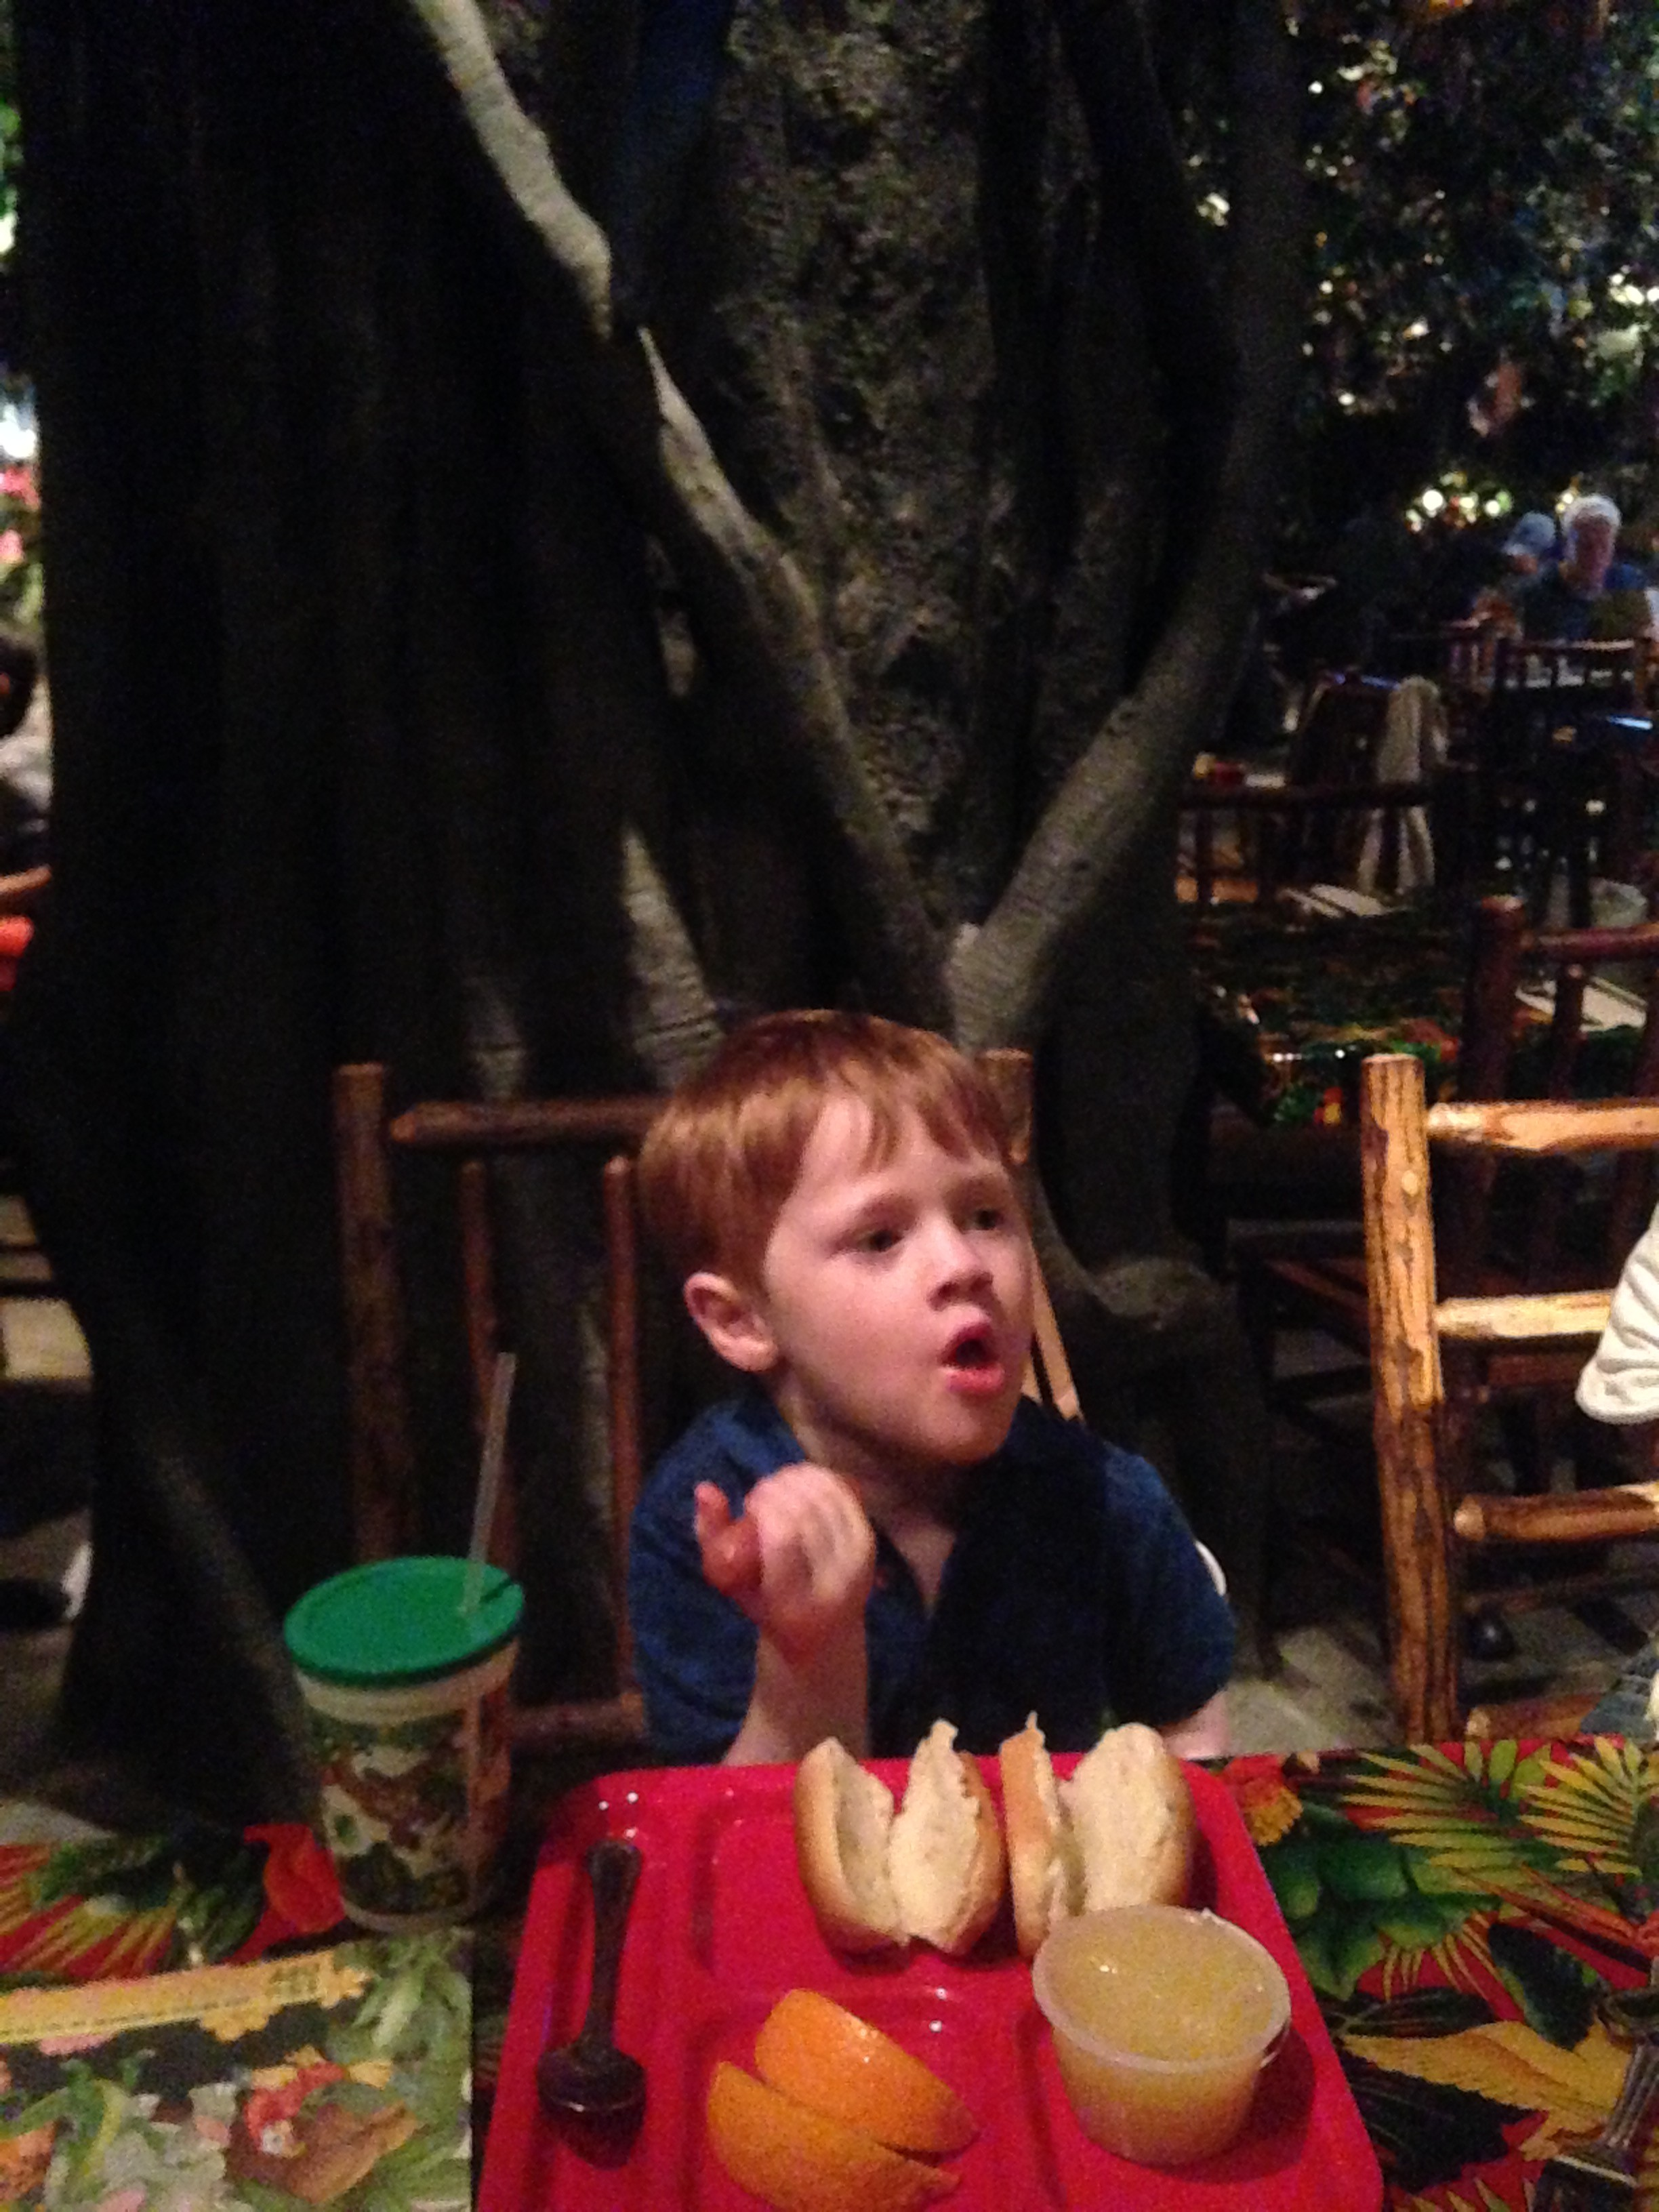 Mother's Day at the Rainforest Cafe